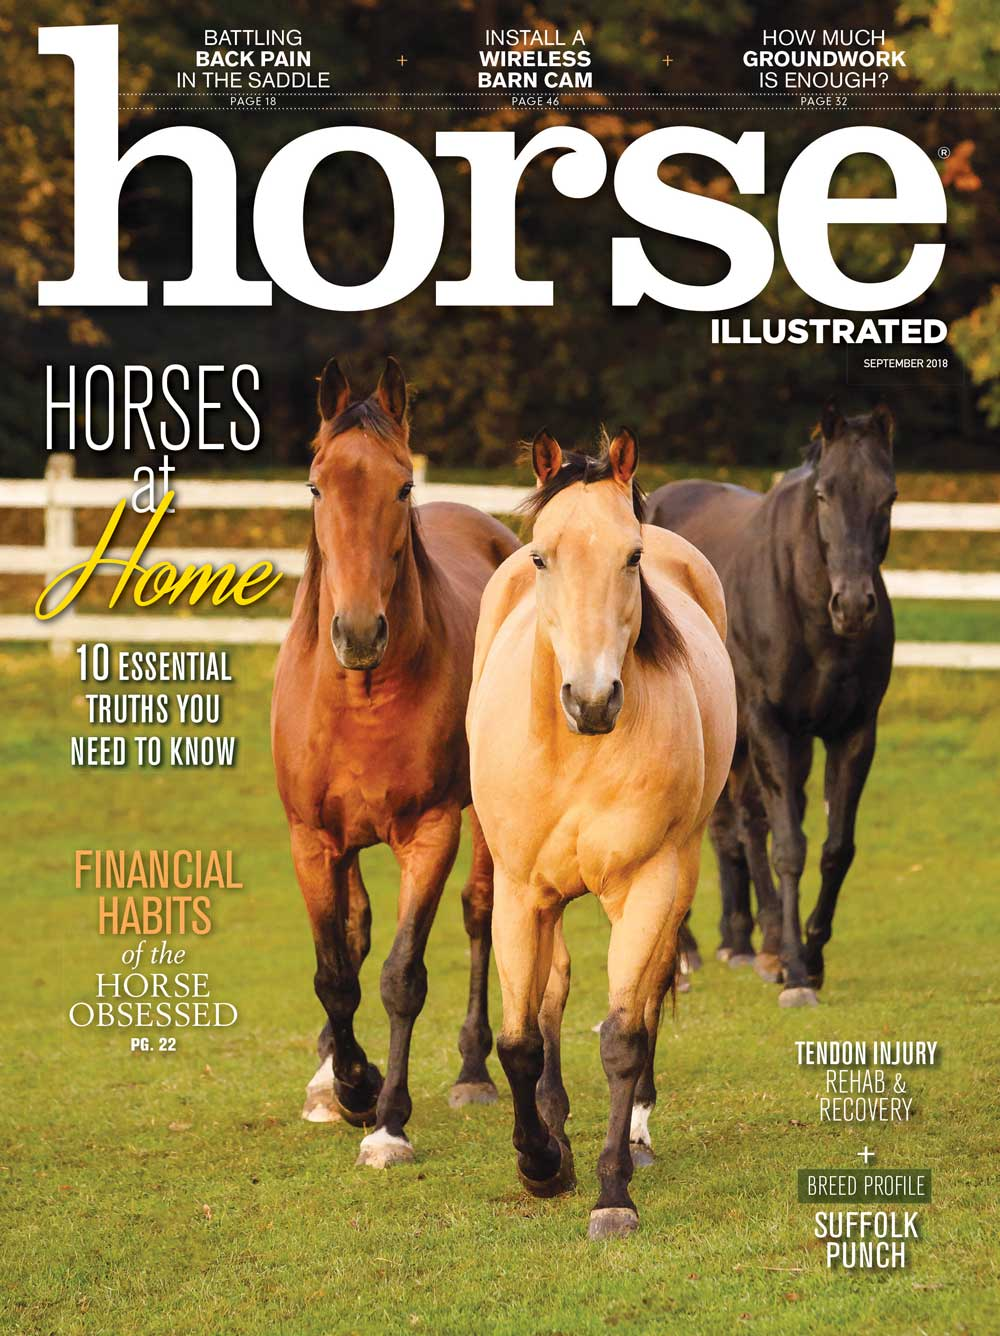 September 2018 Horse Illustrated magazine cover